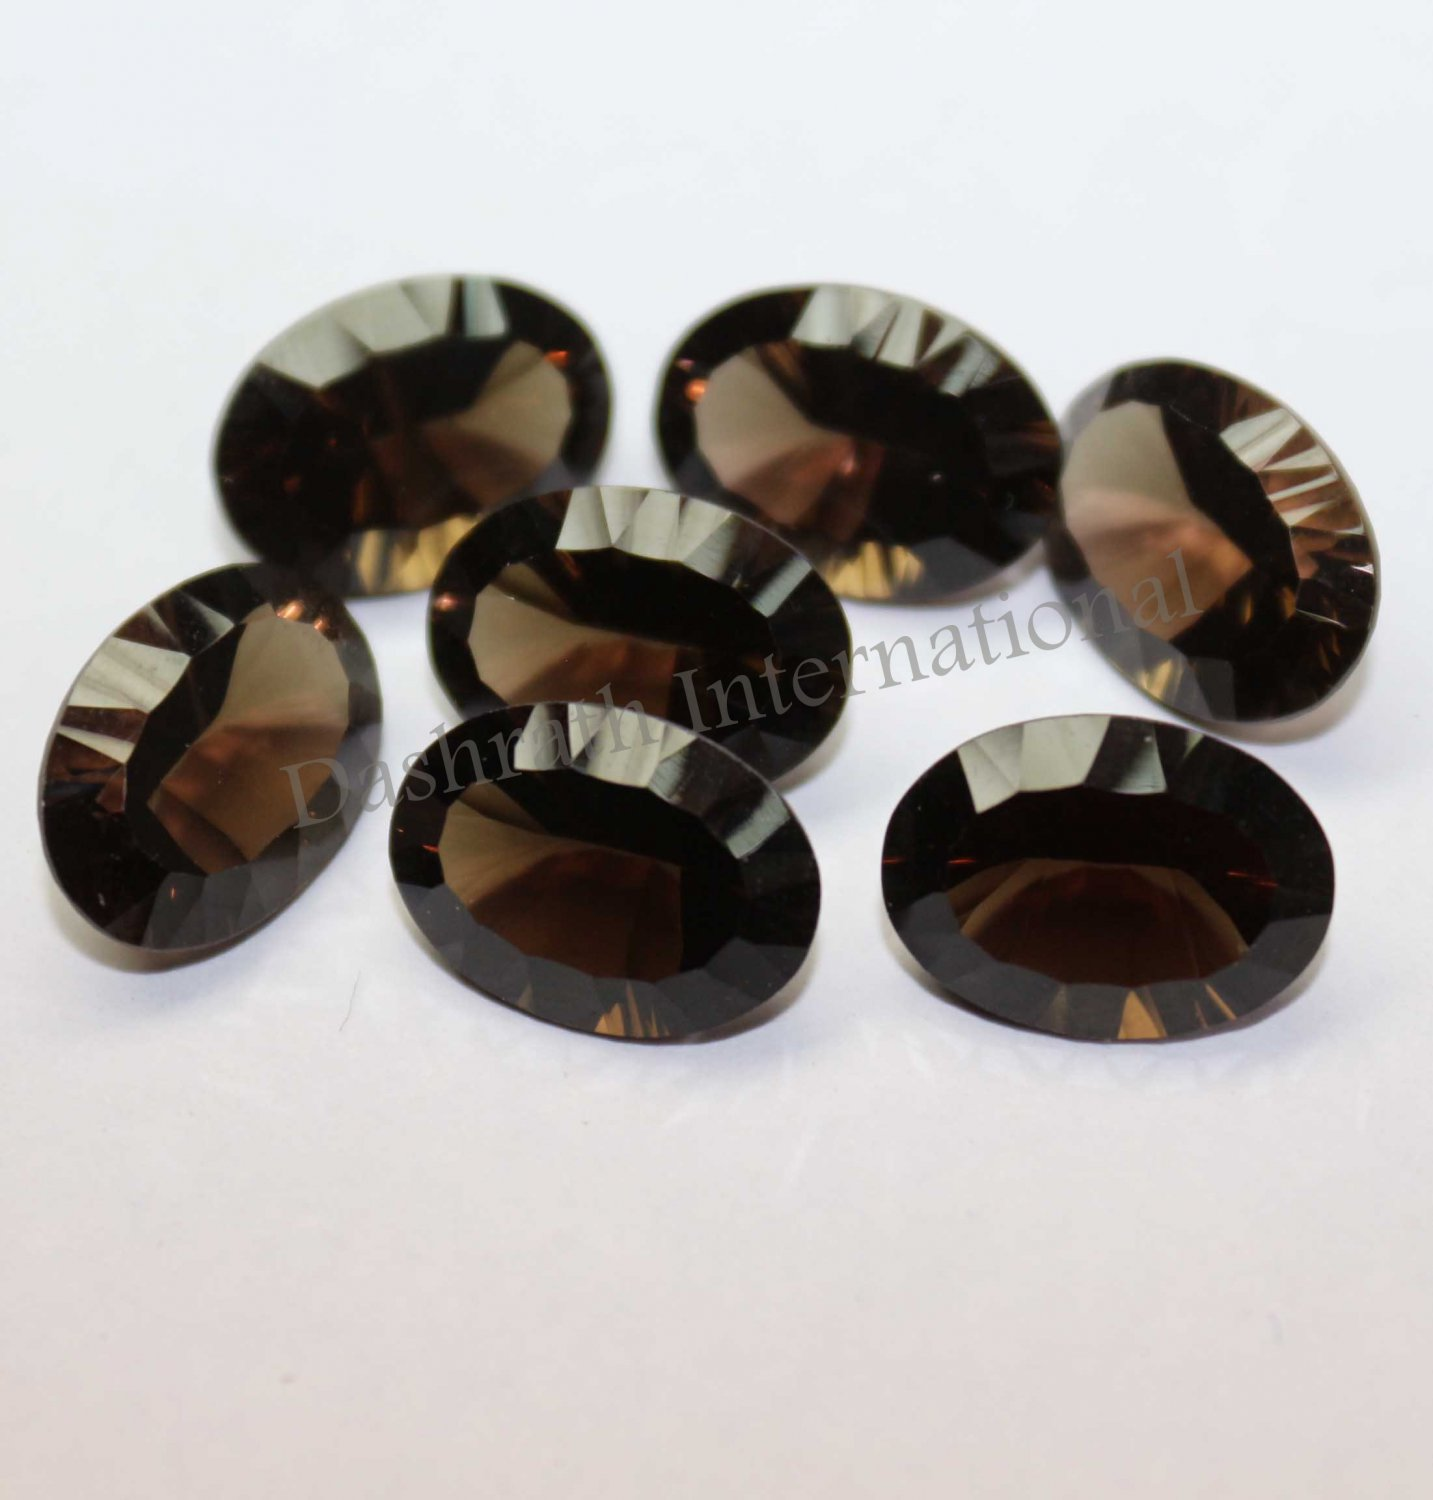 10x14mm Natural Smoky Quartz Concave Cut  Oval  25 Pieces Lot   (SI) Top Quality  Loose Gemstone